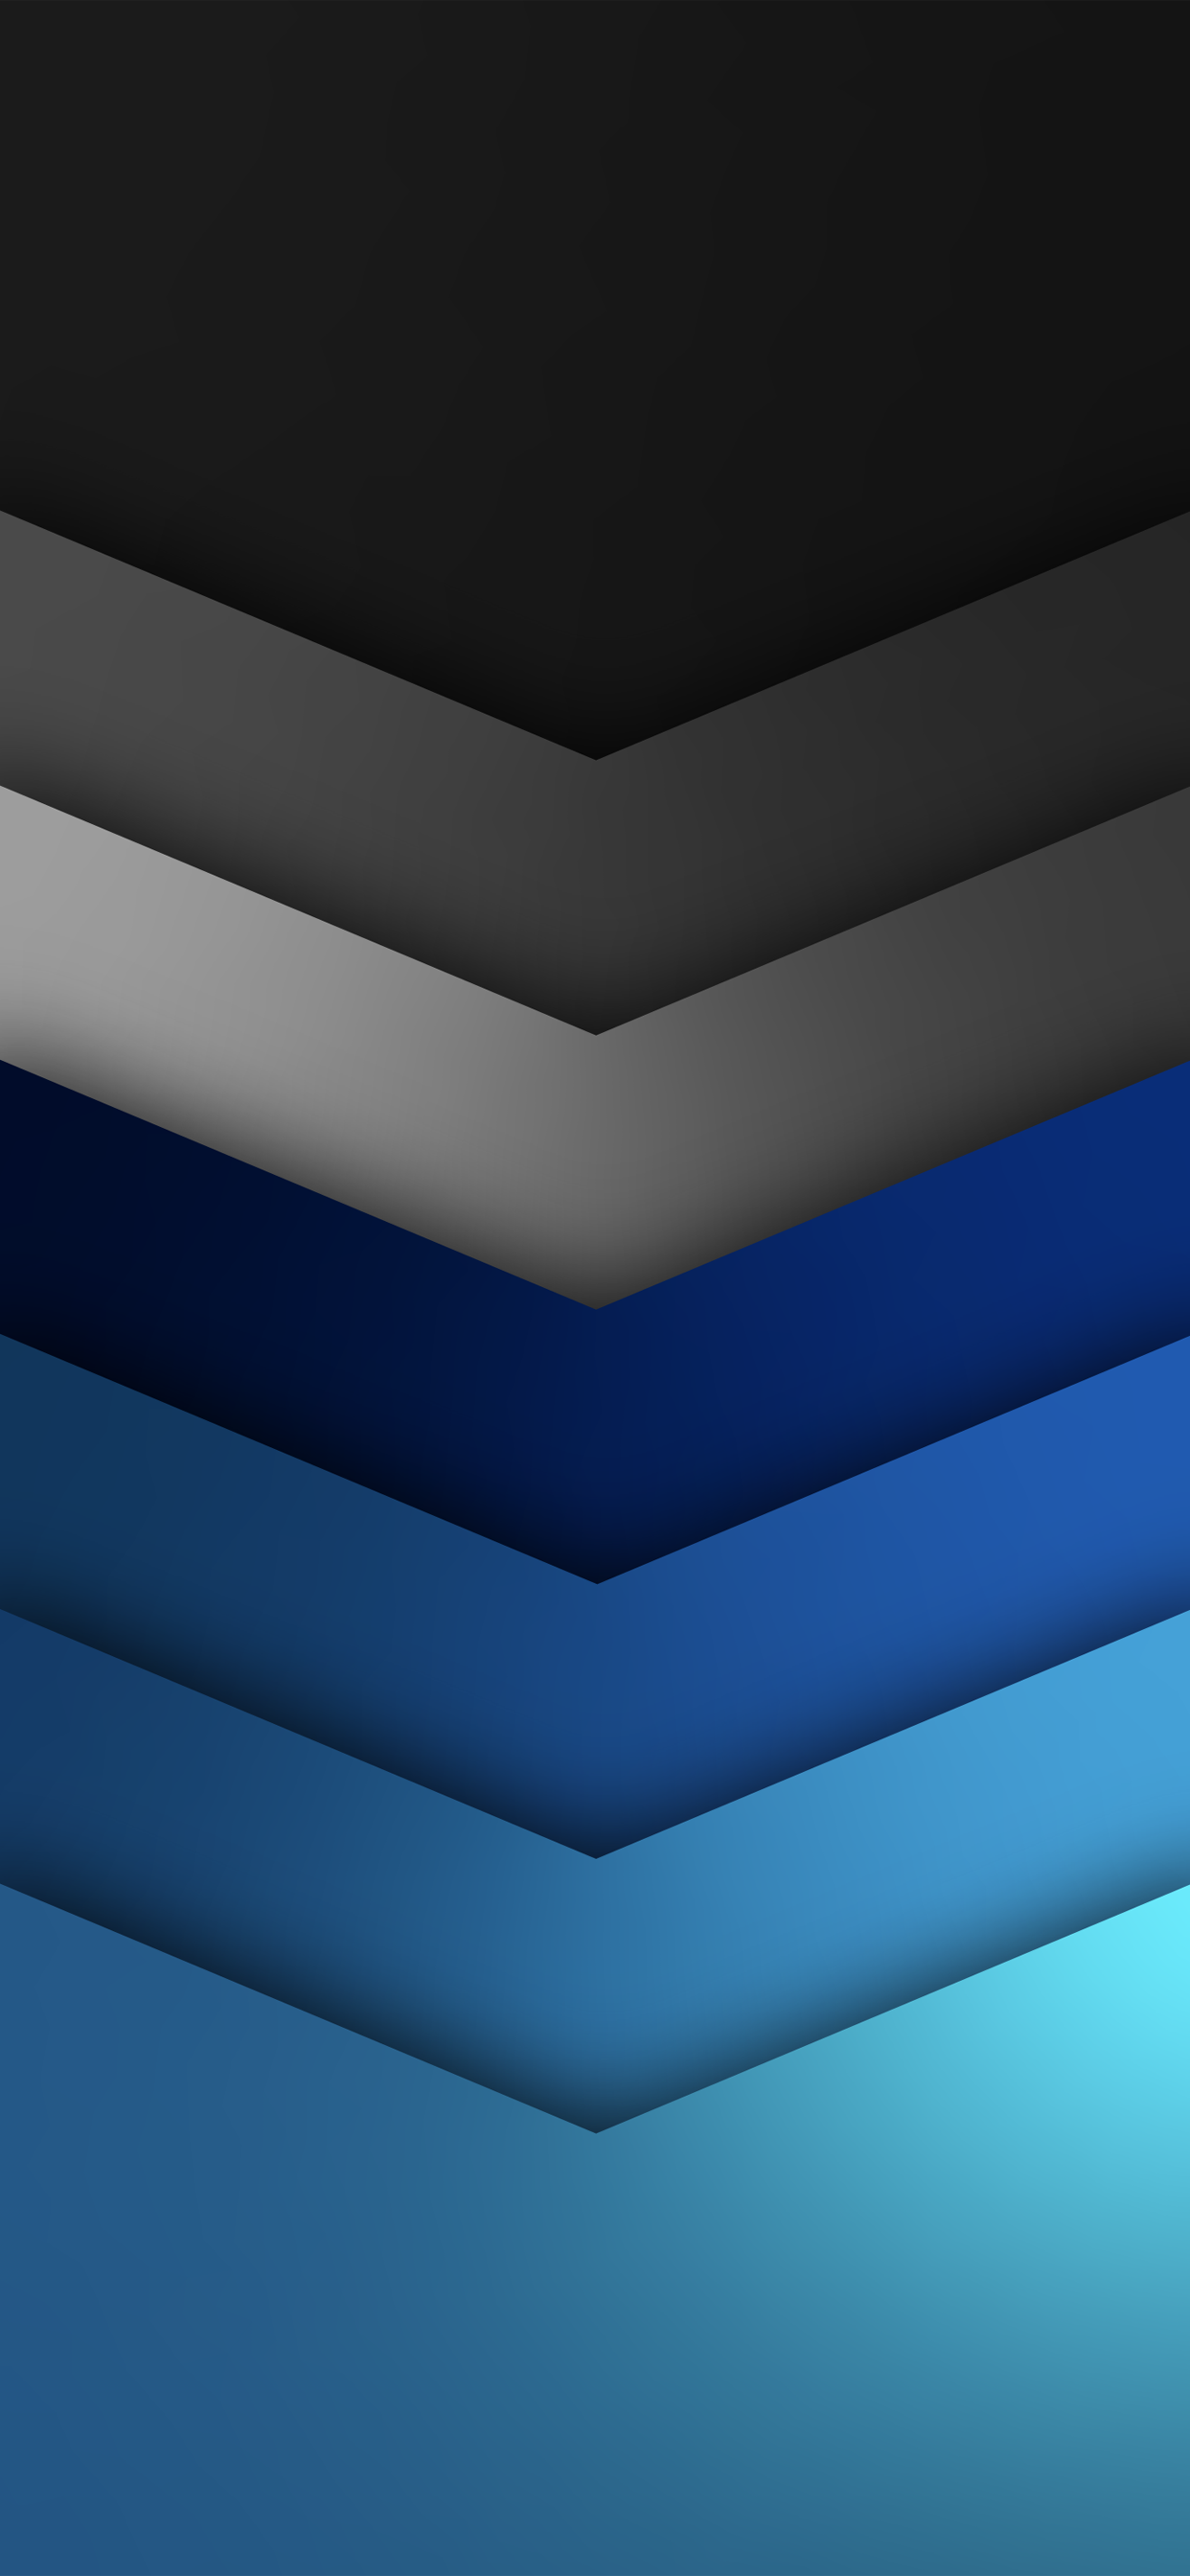 V4 dark pattern iphone wallpaper arthur schrinemacher